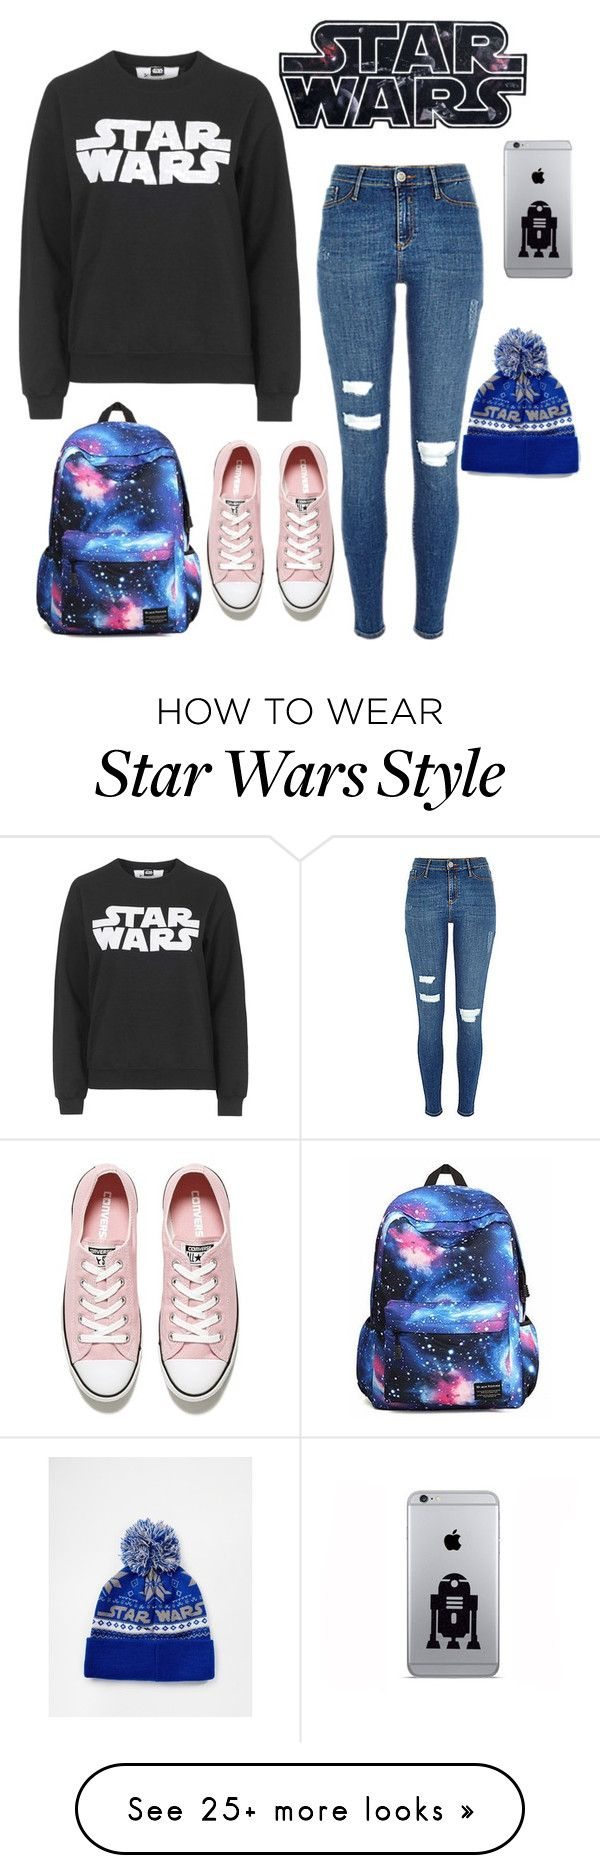 """""""Star wars & Chill?"""" by fan-girl-mode on Polyvore featuring Tee and Cake, ASOS and Converse"""